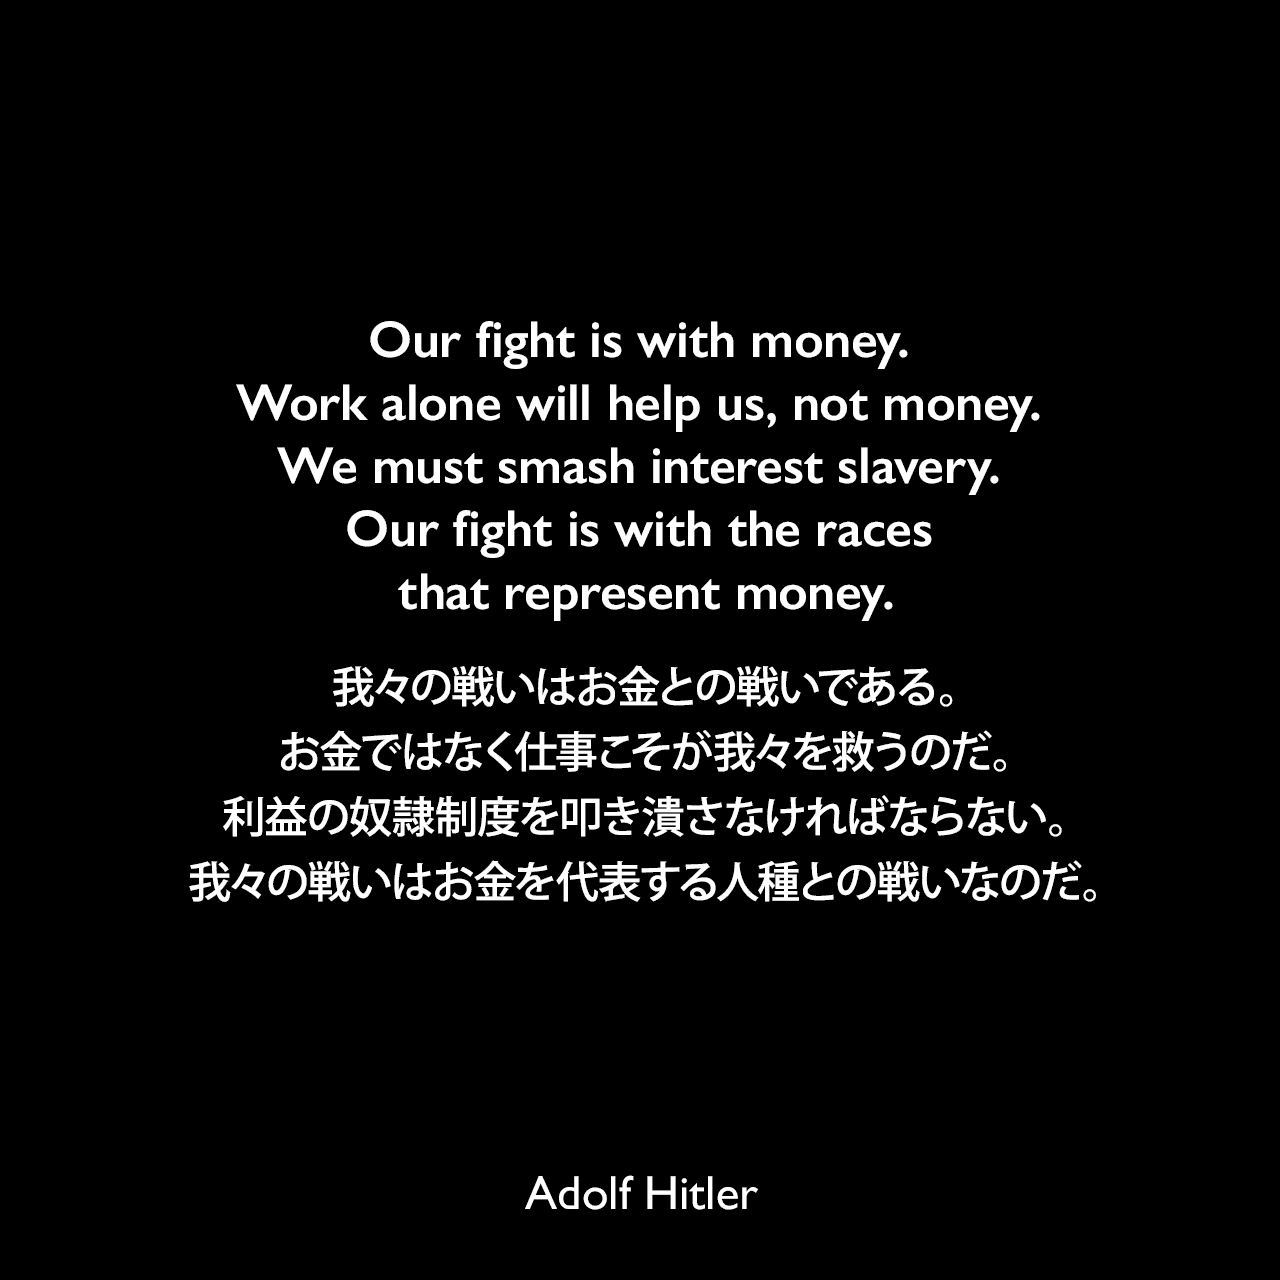 Our fight is with money. Work alone will help us, not money. We must smash interest slavery. Our fight is with the races that represent money.我々の戦いはお金との戦いである。お金ではなく仕事こそが我々を救うのだ。利益の奴隷制度を叩き潰さなければならない。我々の戦いはお金を代表する人種との戦いなのだ。- 1919年12月18日のスピーチよりAdolf Hitler